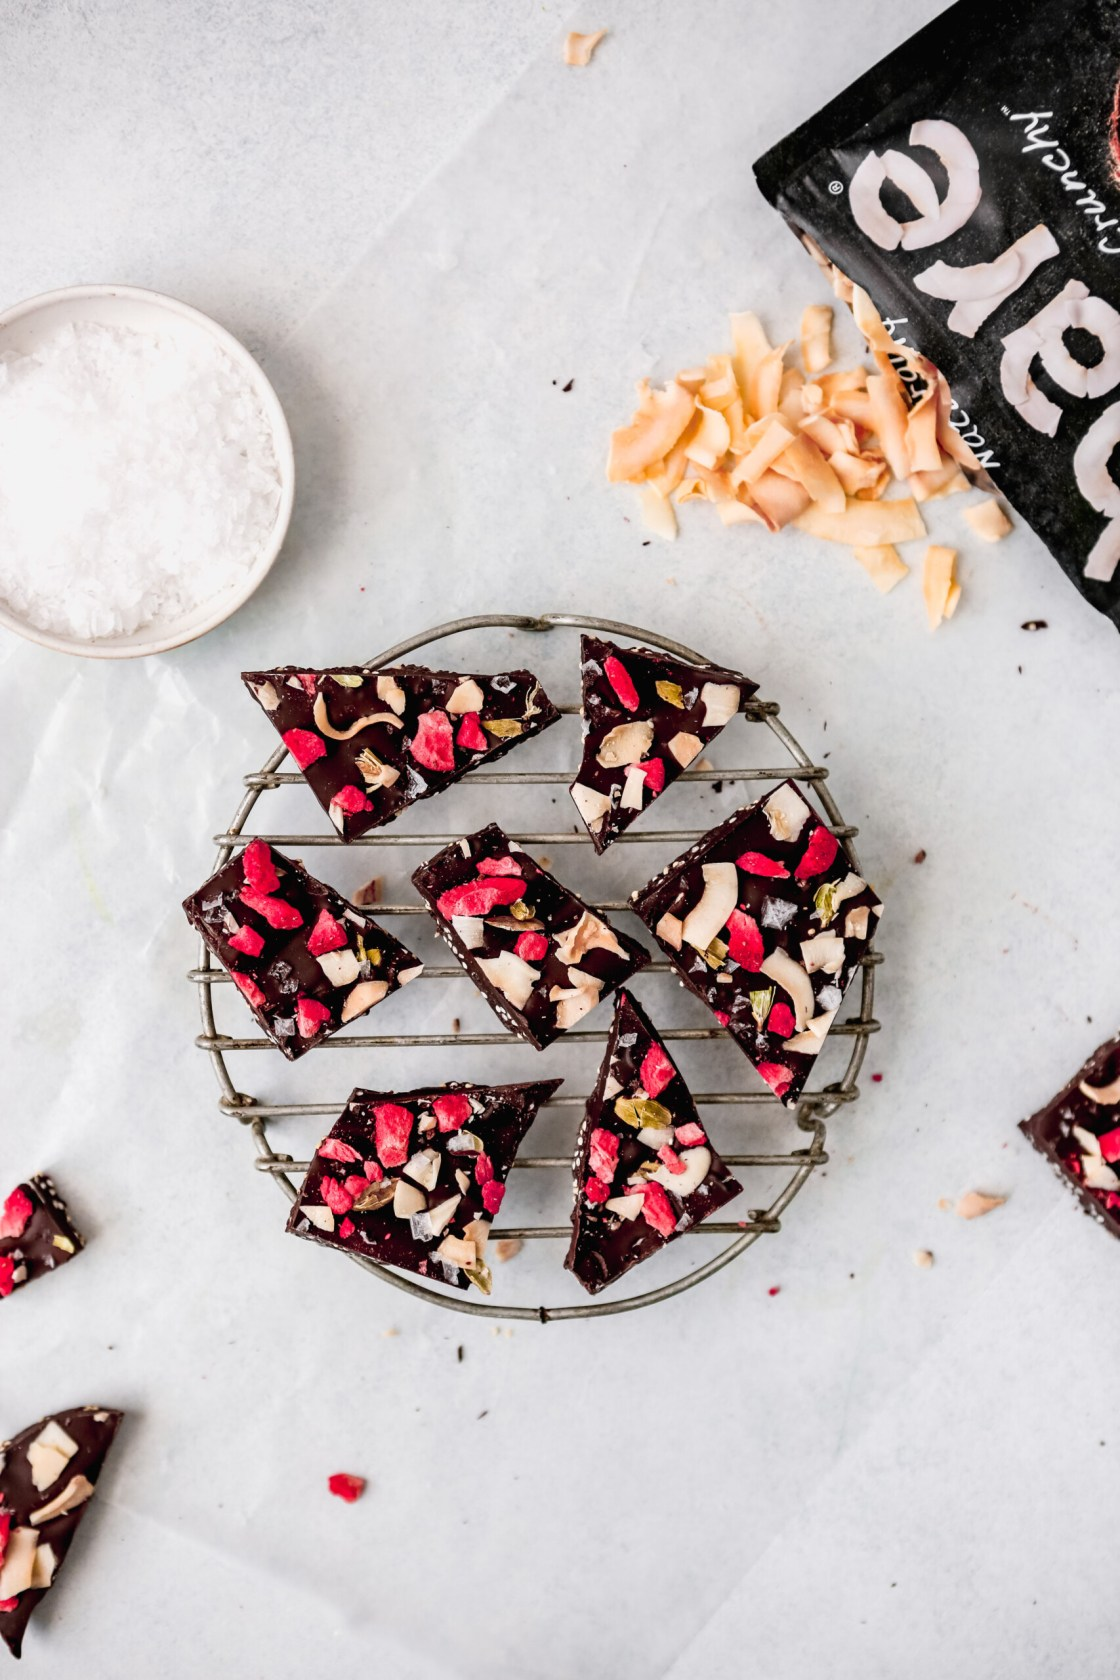 Overhead photograph of dark chocolate coconut bark set on a white table with salt set on a wire rack